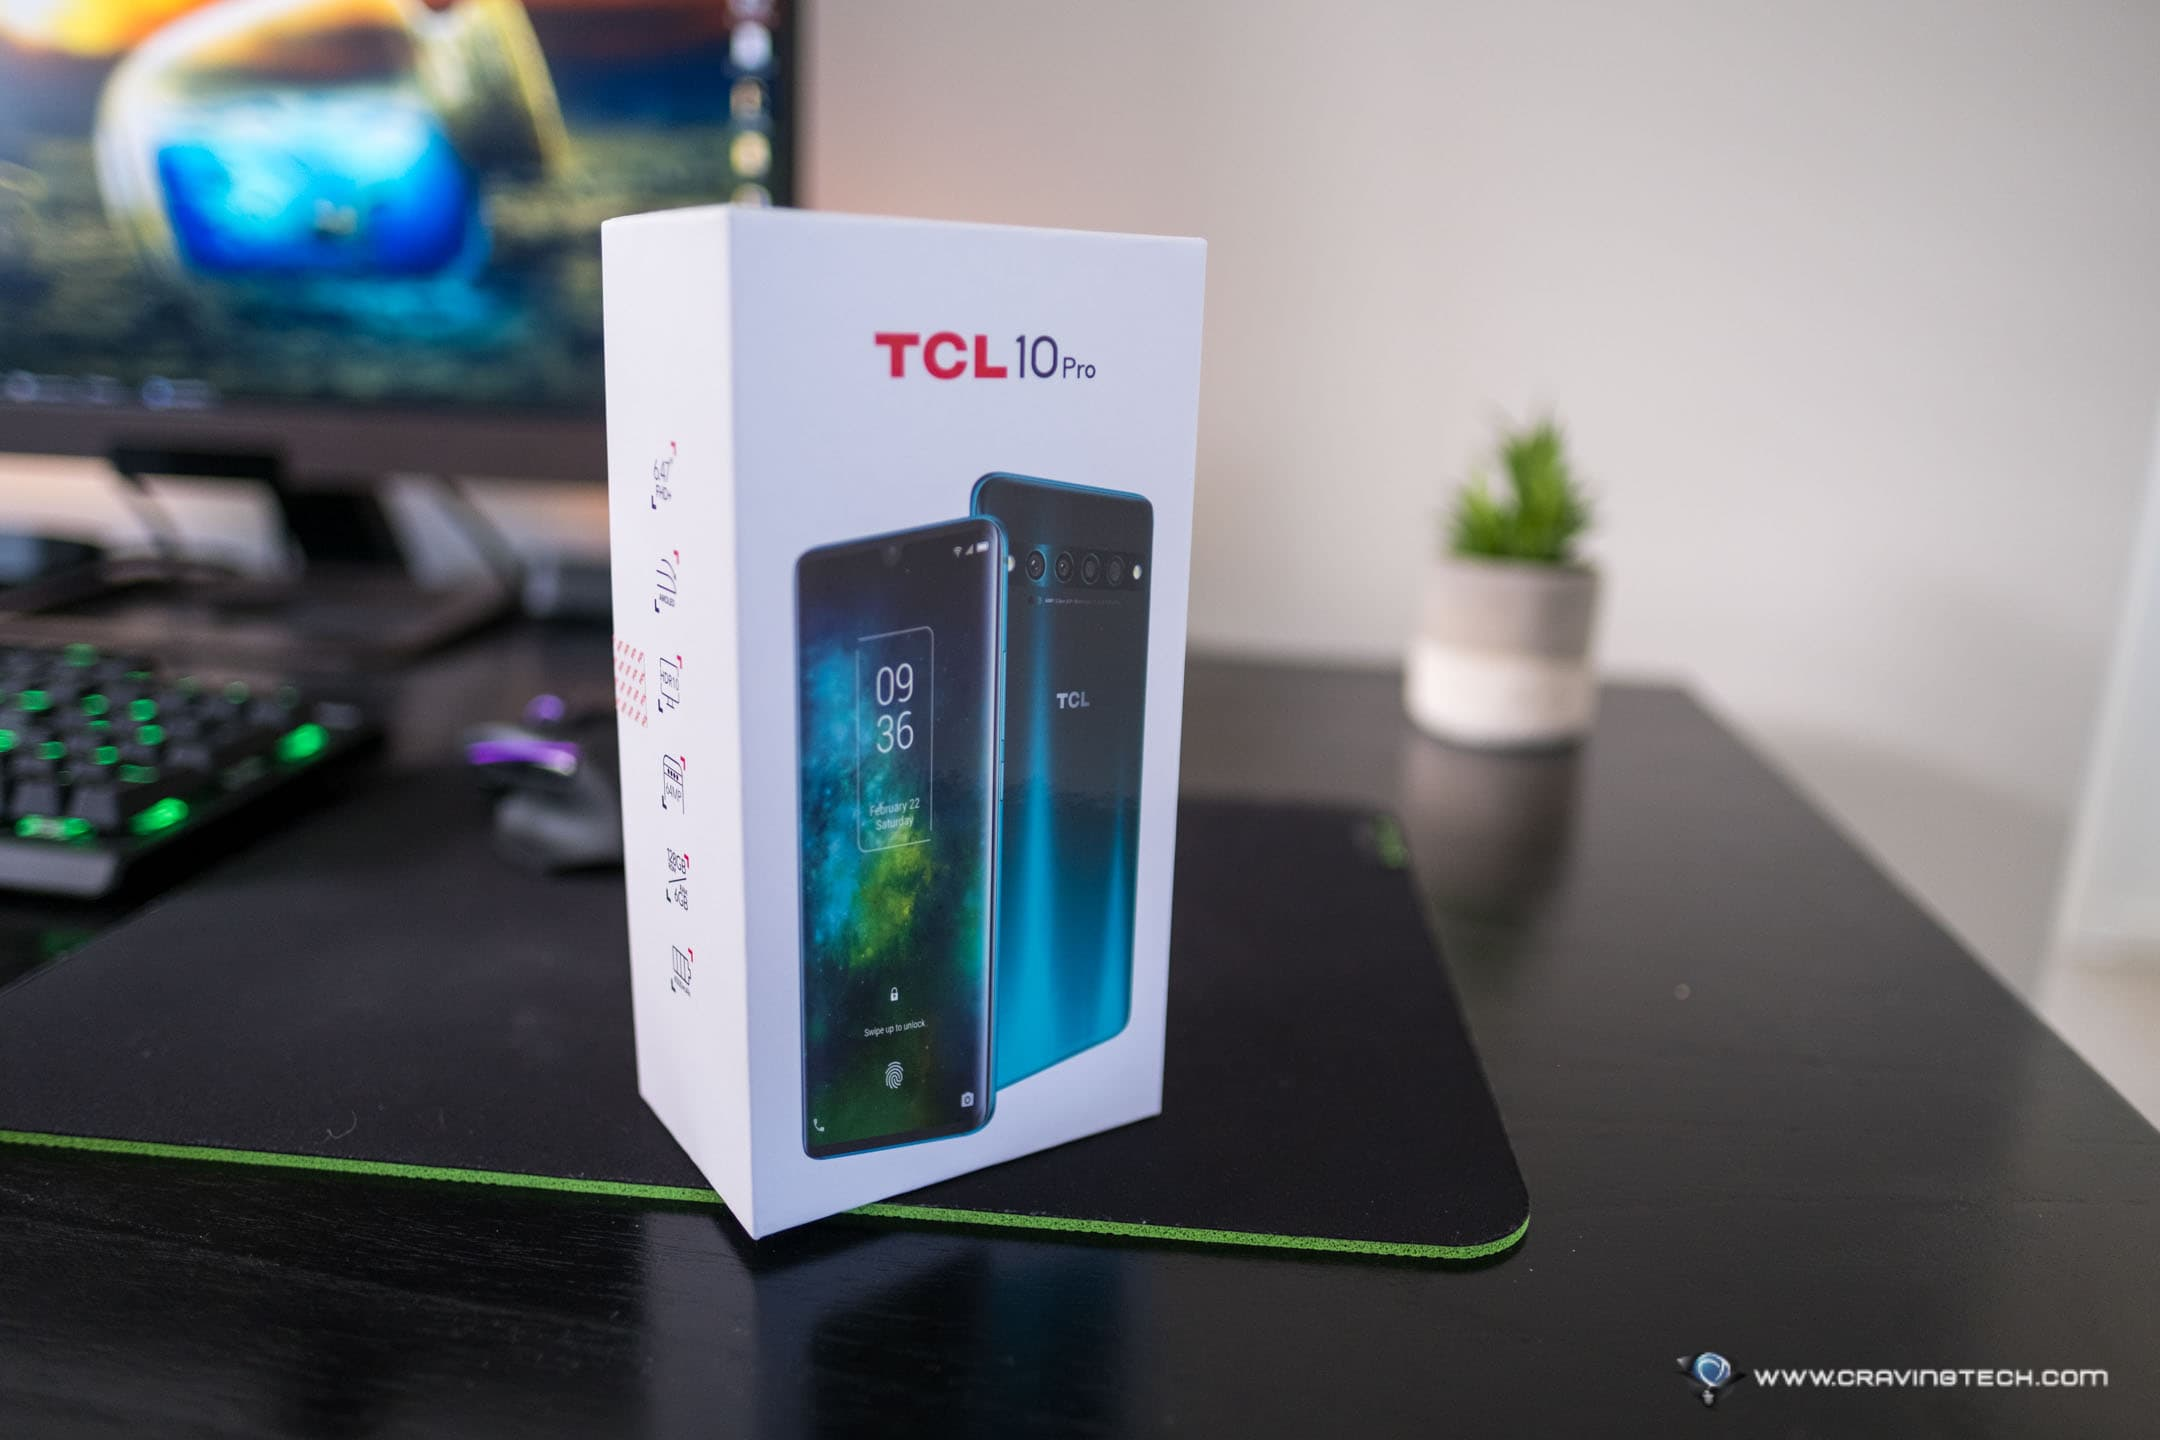 TCL 10 Pro (valued at $749) Smartphone Giveaway!